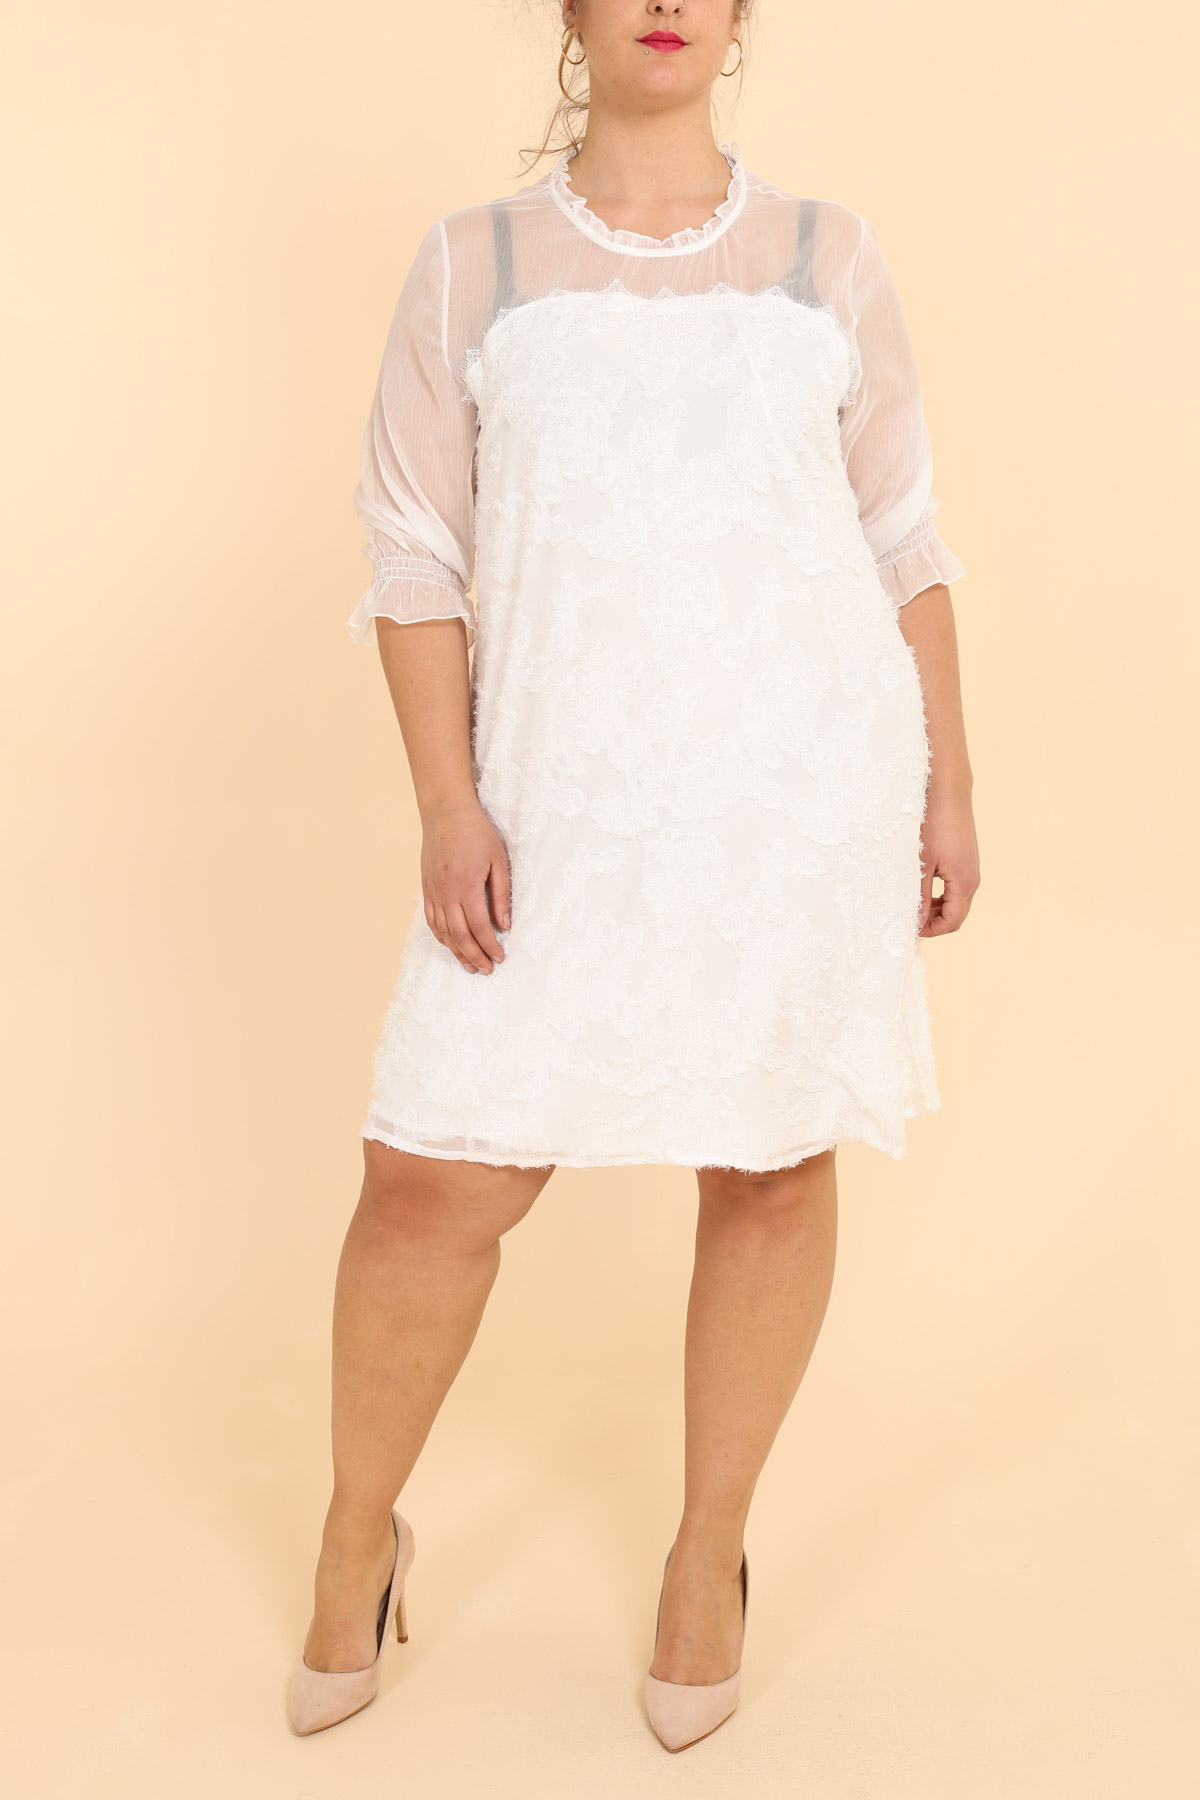 Magasin grande taille vetement pomme rouge collection robe C6190B